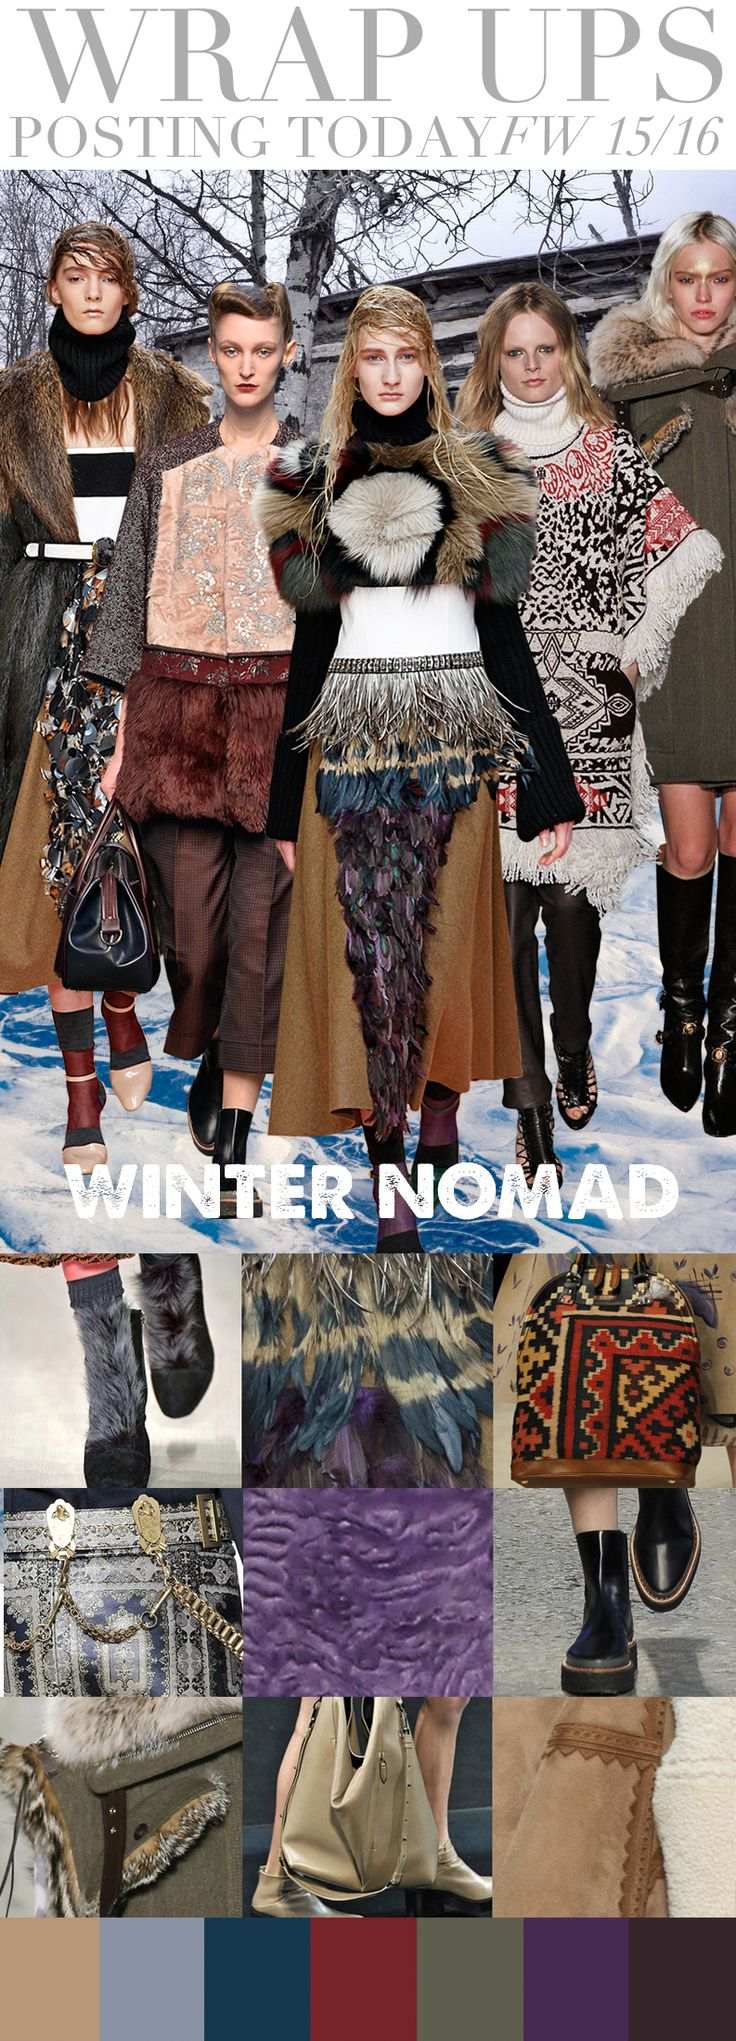 TREND COUNCIL F/W 2015- WINTER NOMAD